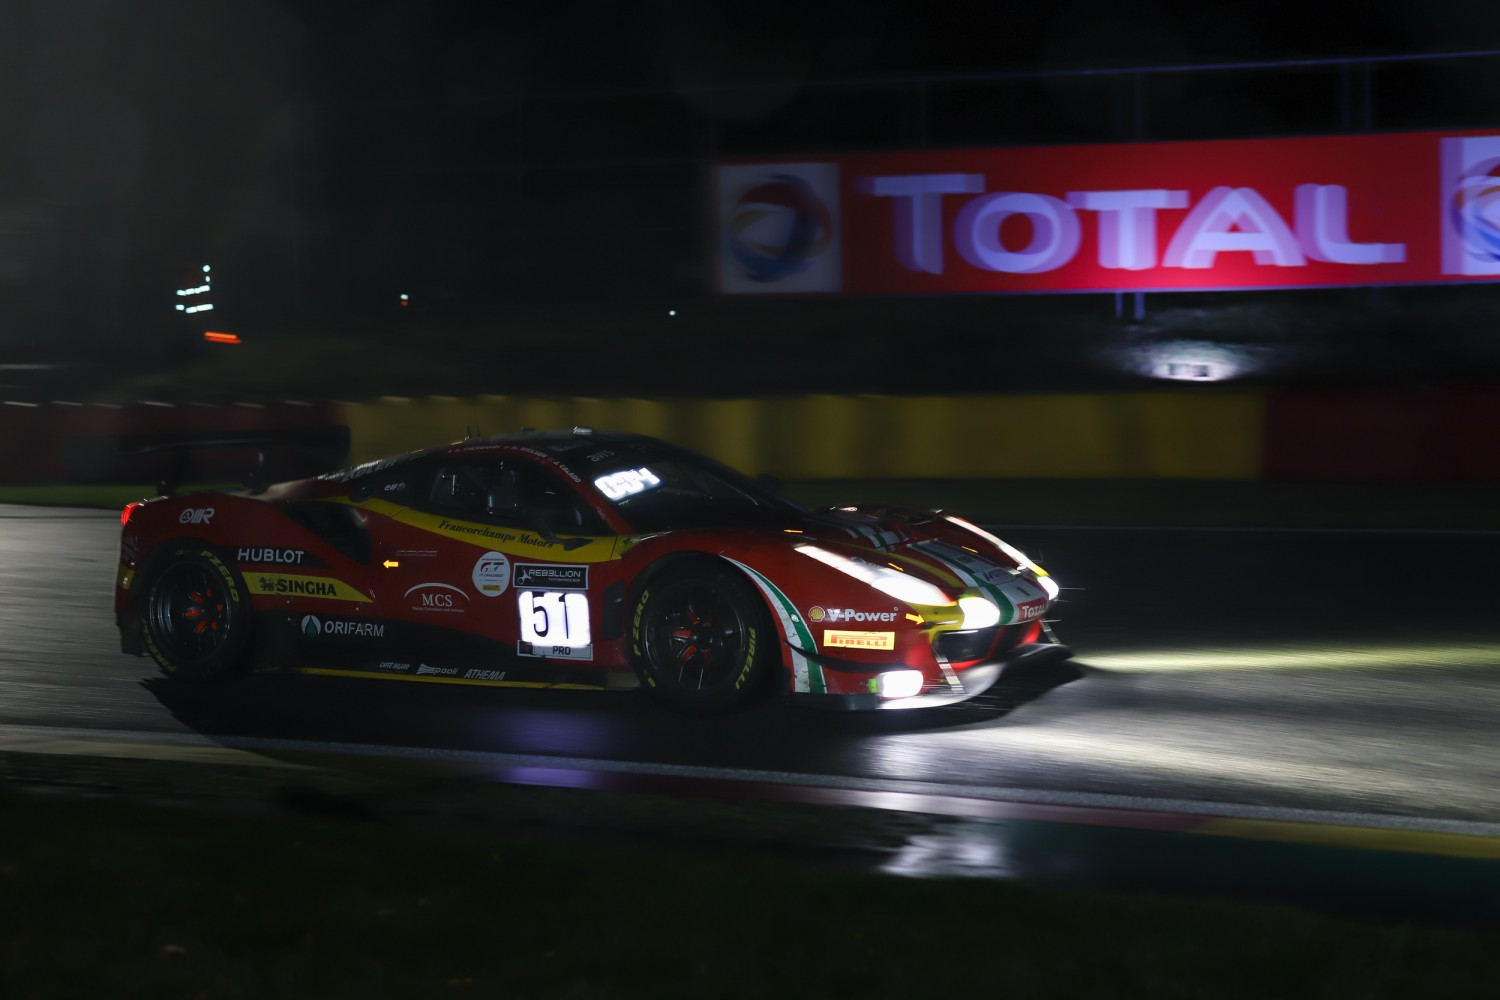 AF Corse Ferrari in the lead at the halfway point